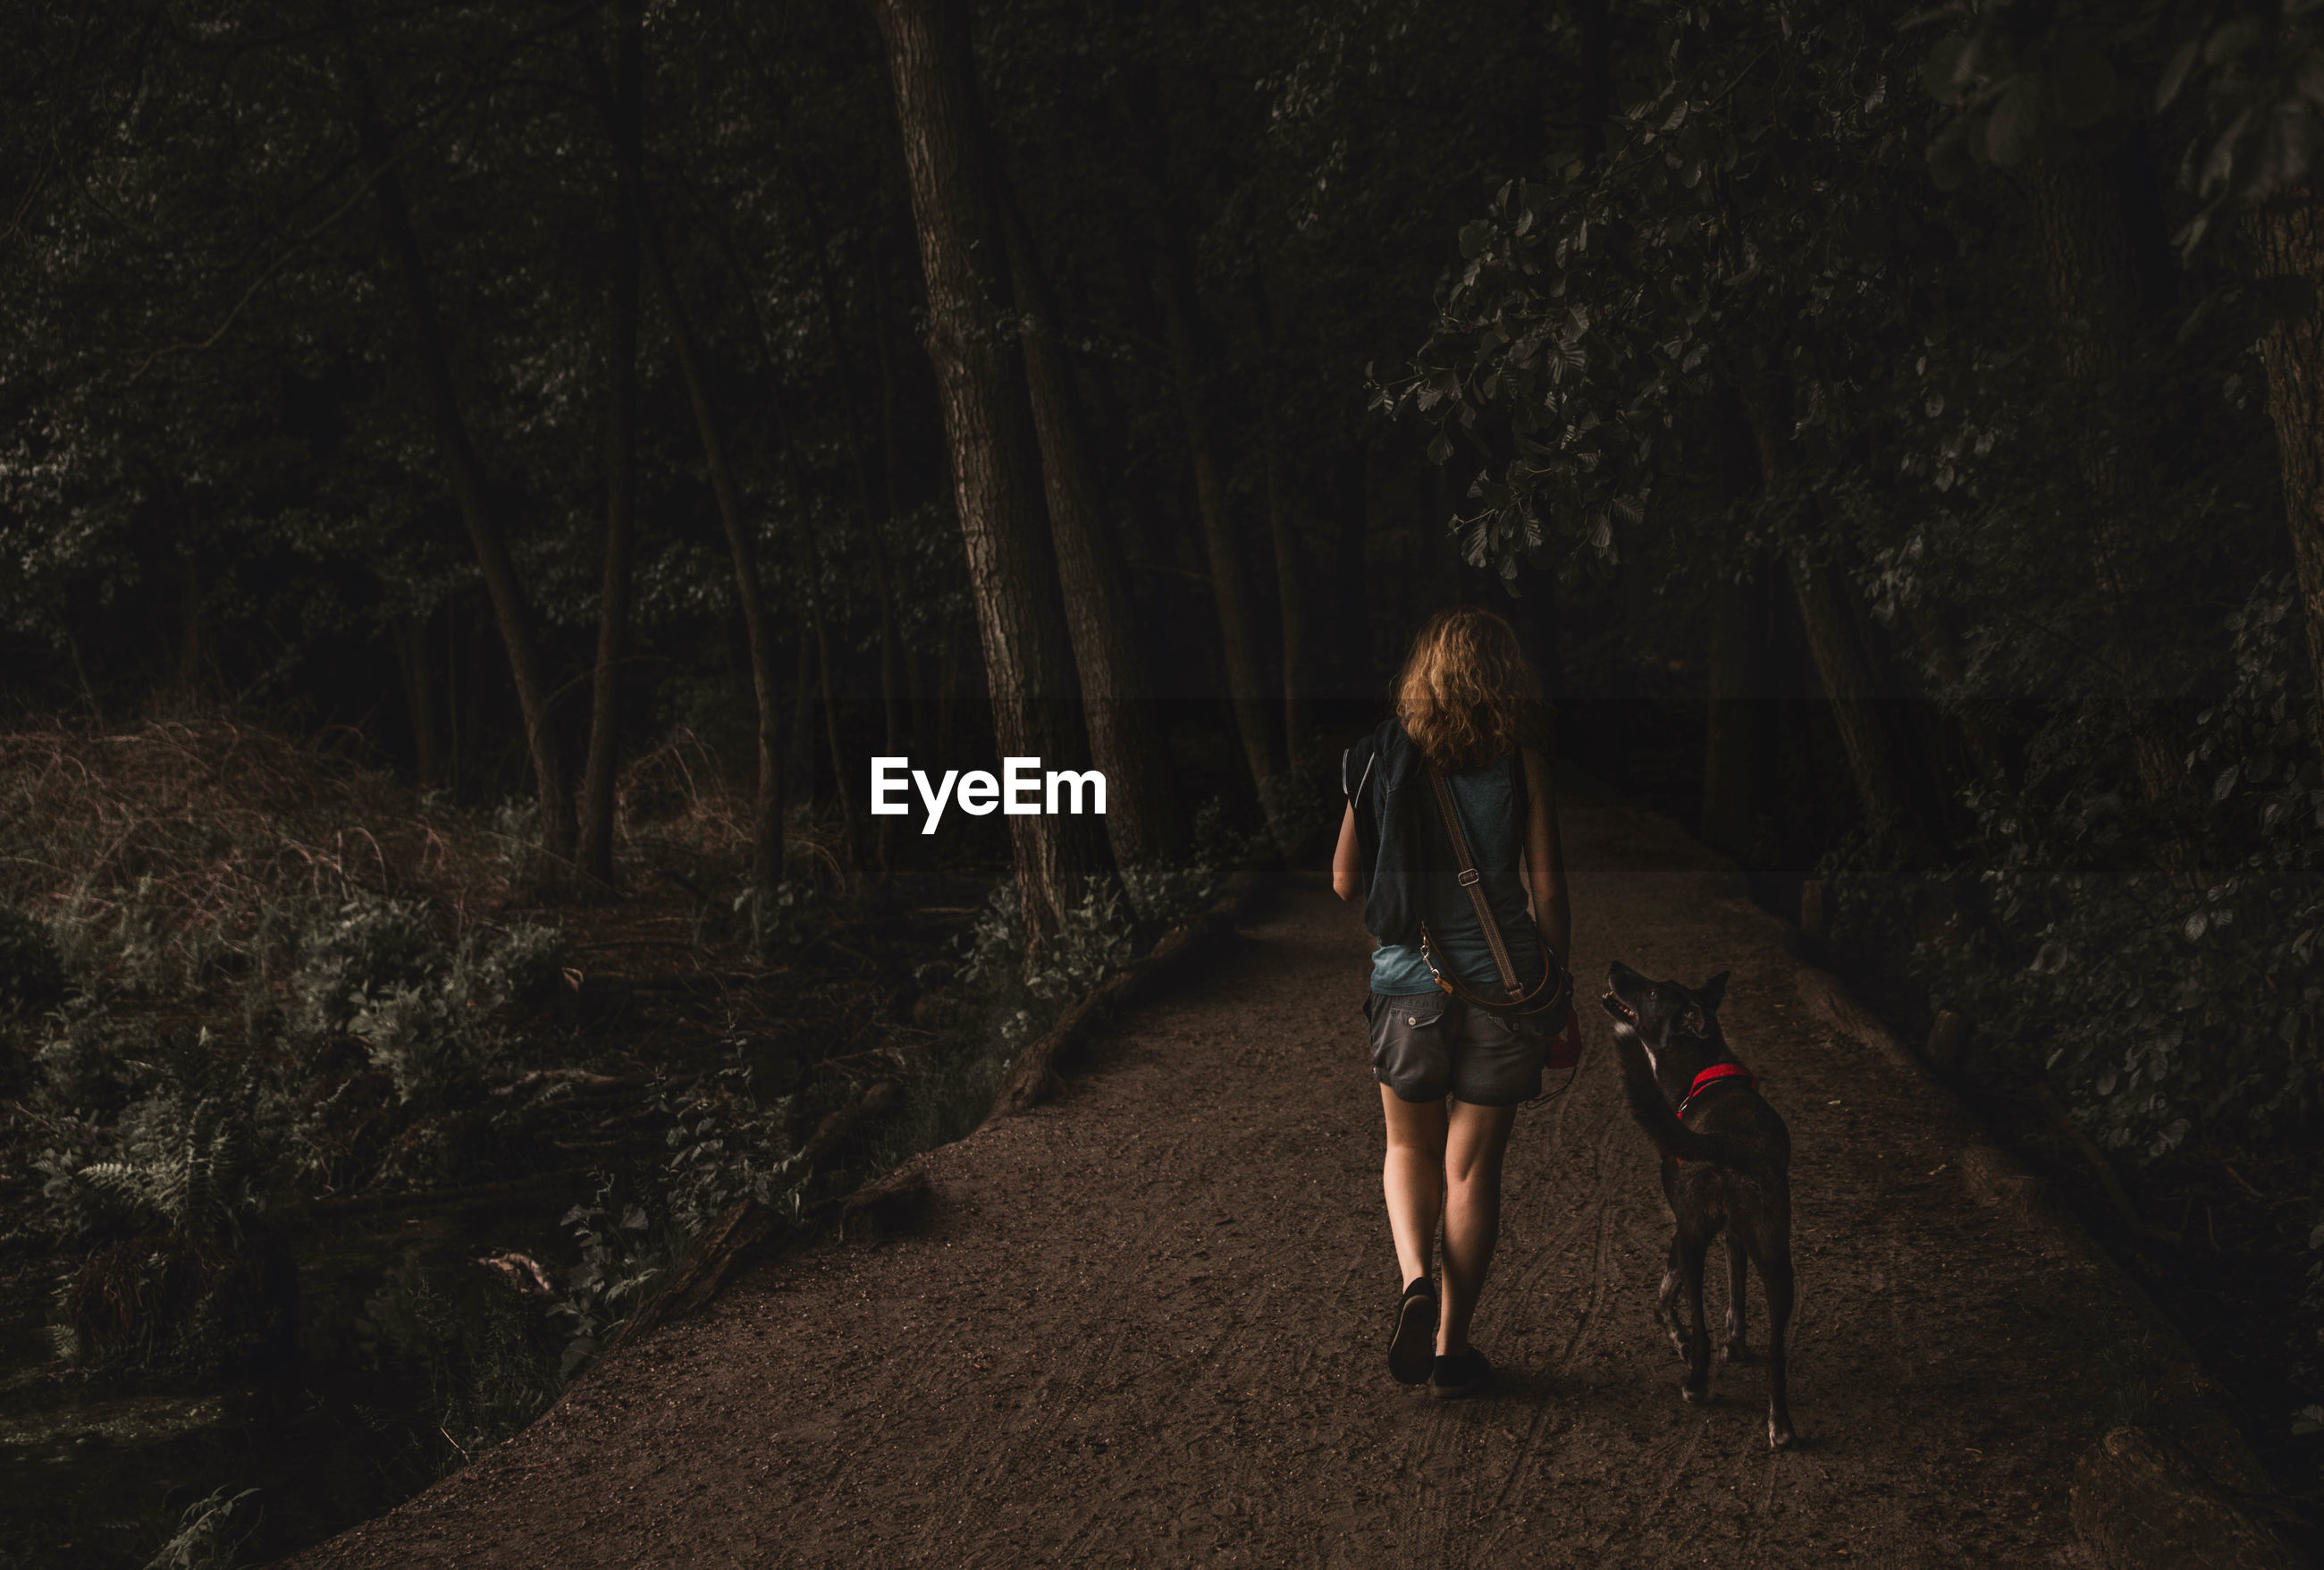 Rear view of woman with dog walking in forest